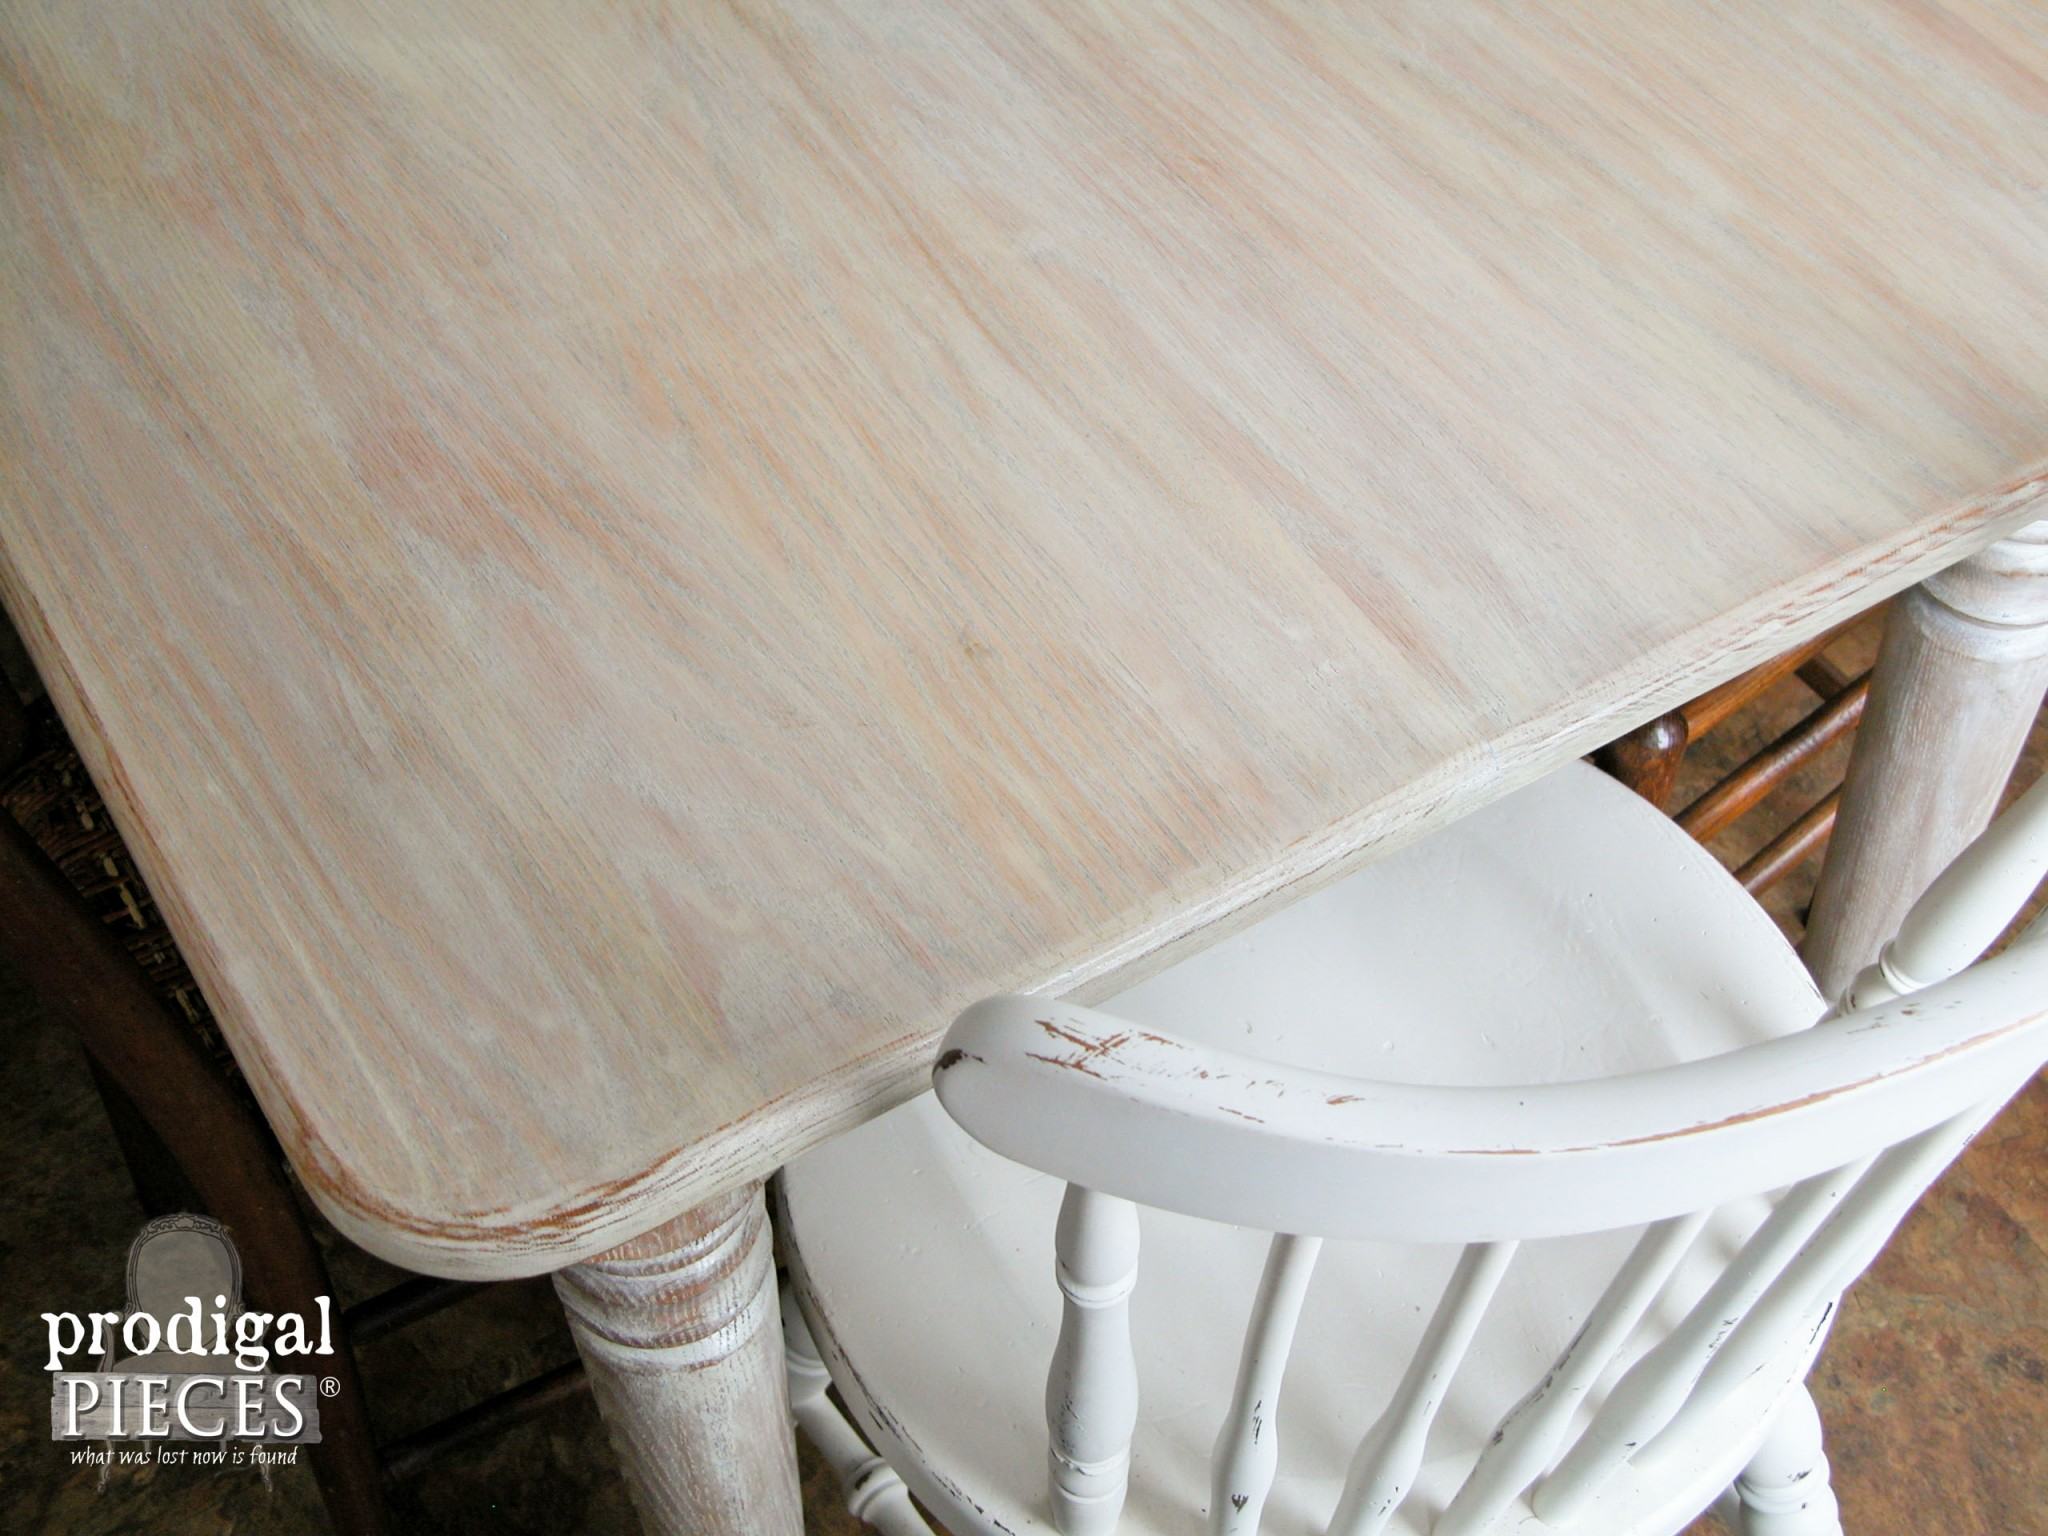 Limewashed (whitewashed) Farmhouse Table Top by Prodigal Pieces | www.prodigalpieces.com